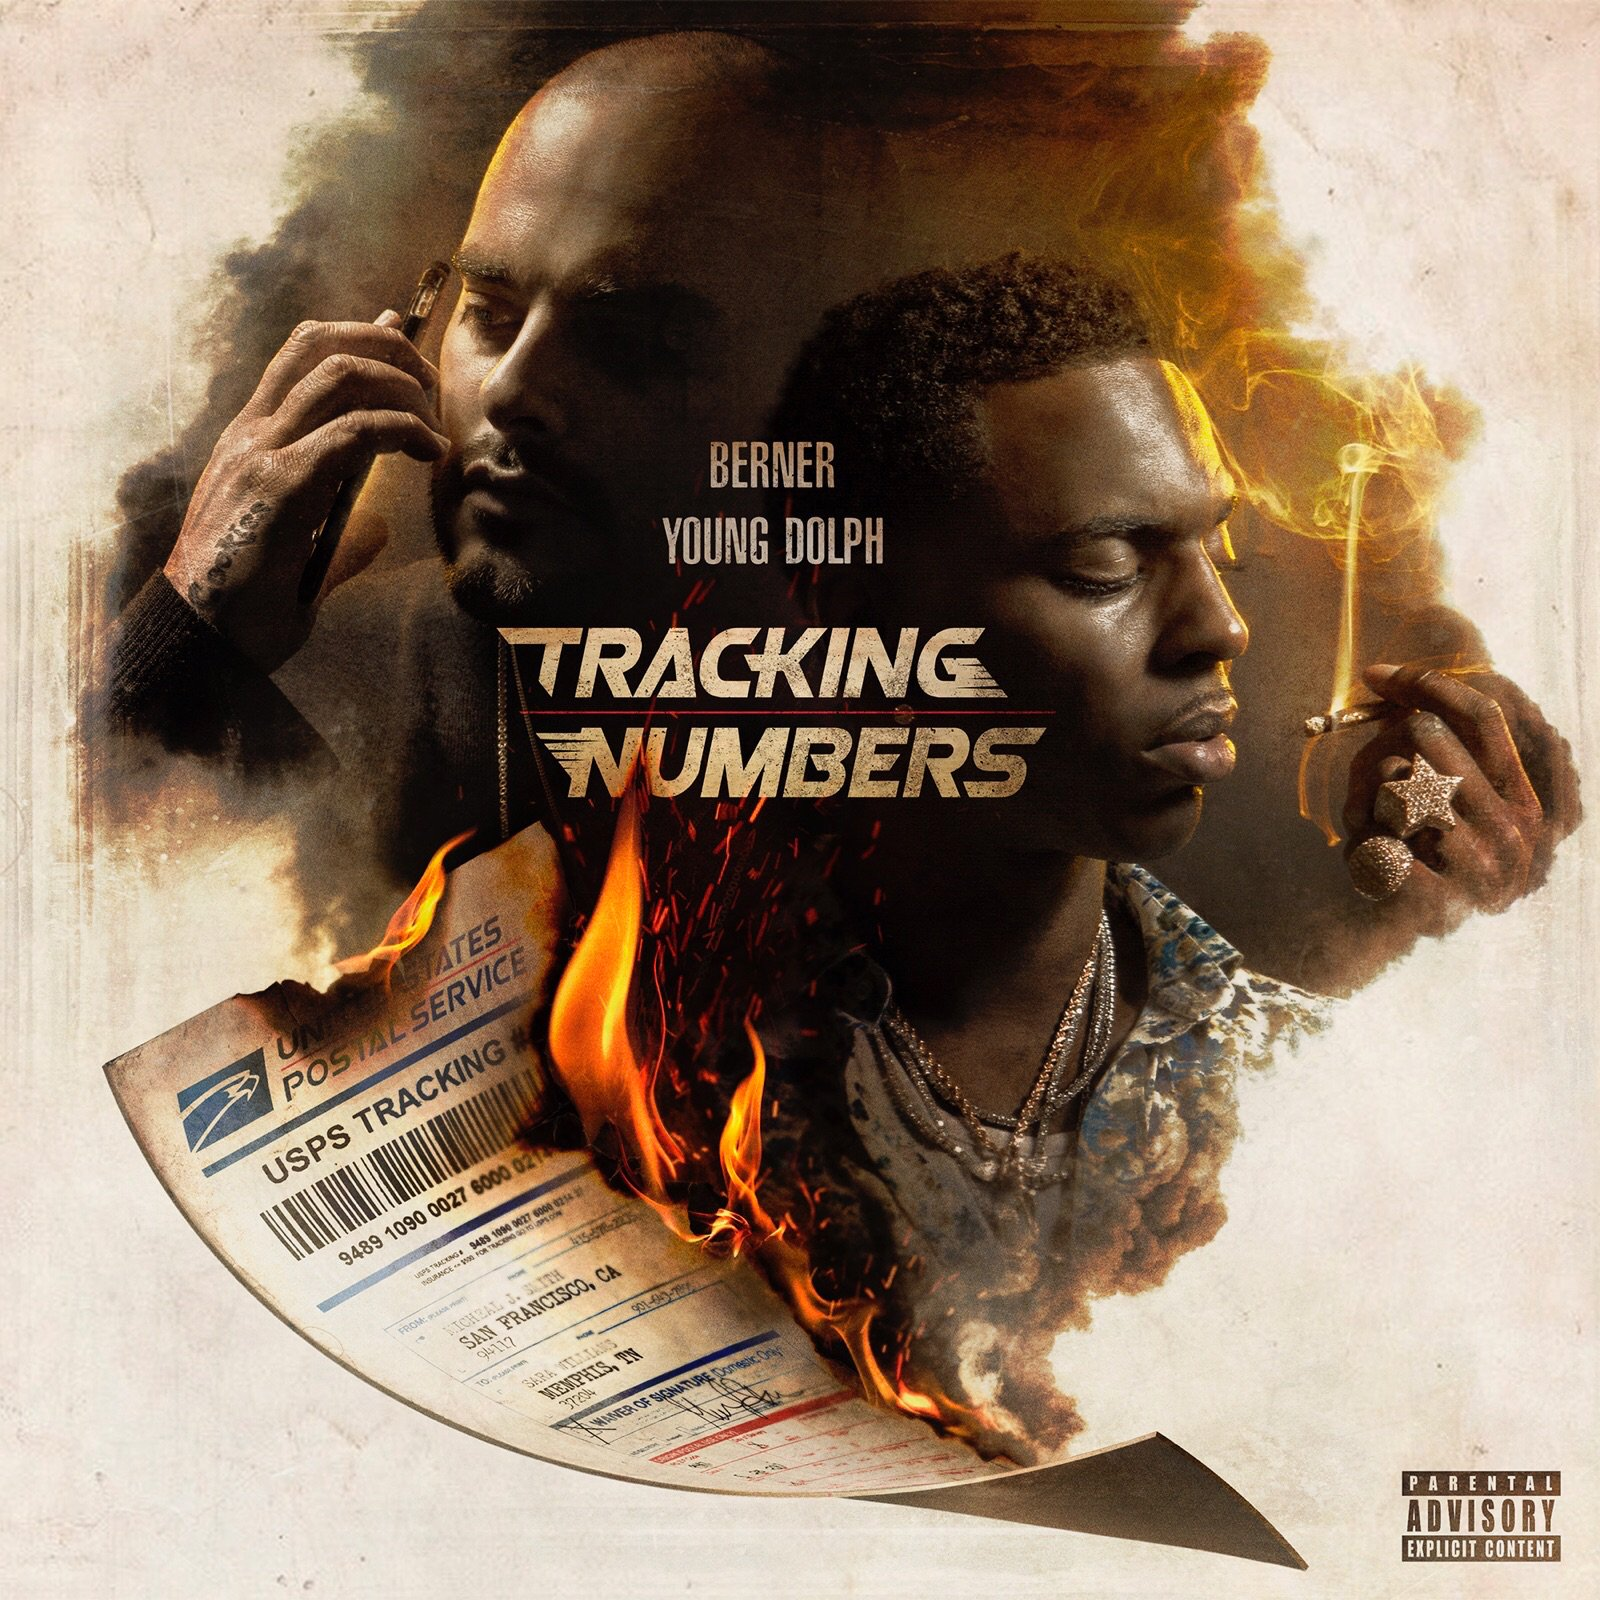 Premiere! Listen to @Berner415 & @YoungDolph New Project #TrackingNumbers ��  https://t.co/NCiU9Bpt9k #TGOD https://t.co/2yyQo6UNwU